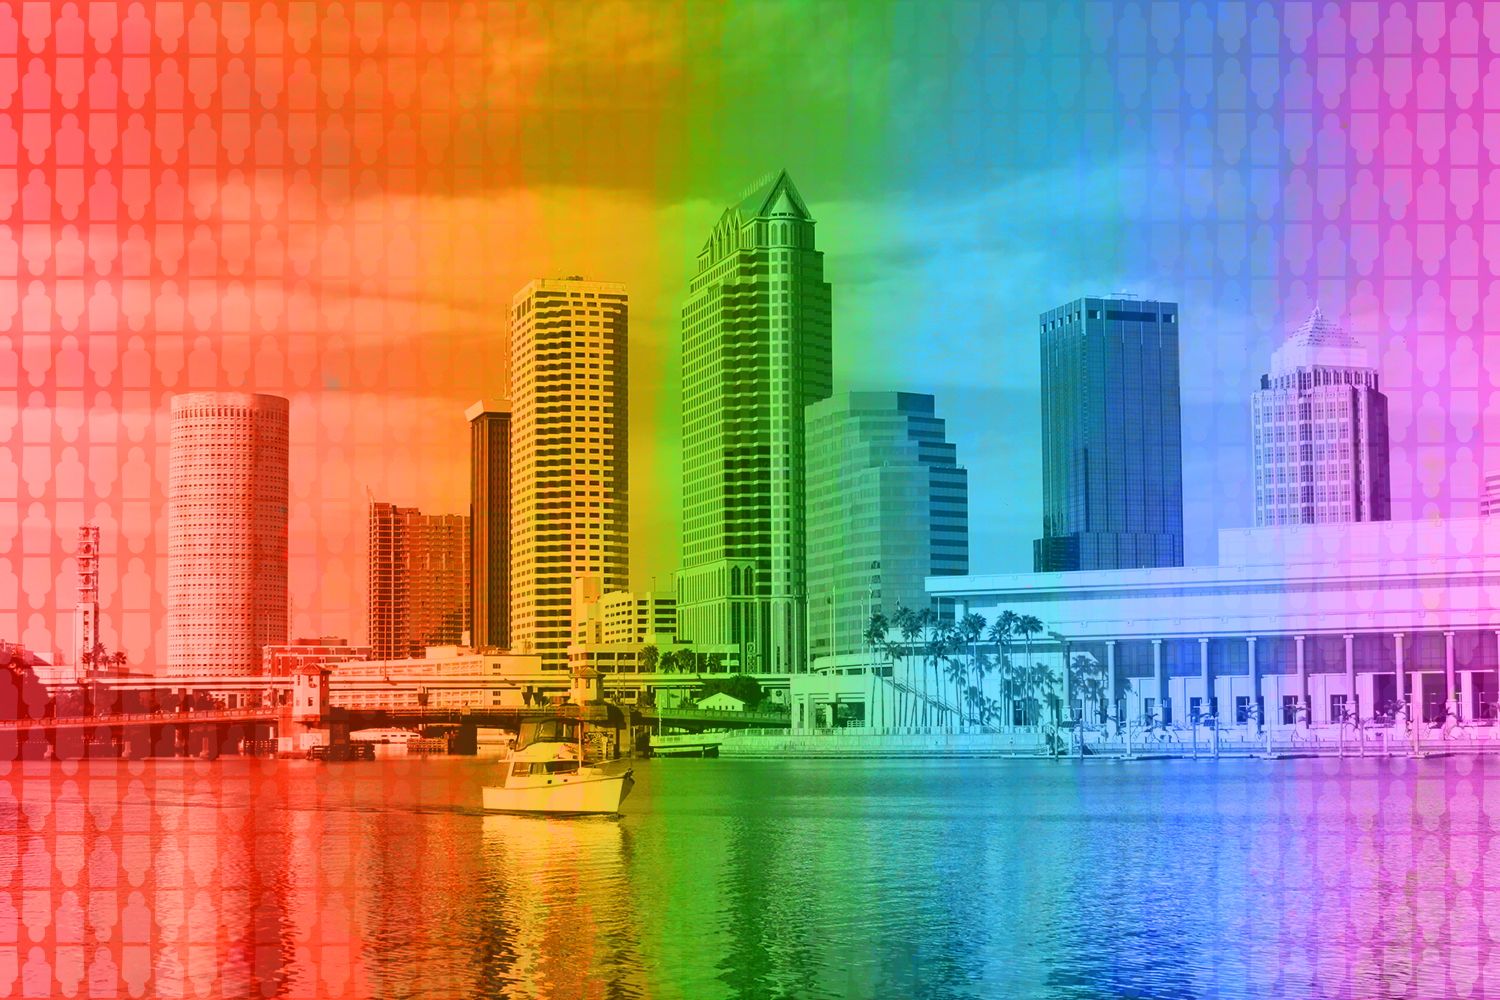 Tampa city skyline with a rainbow treatment on image